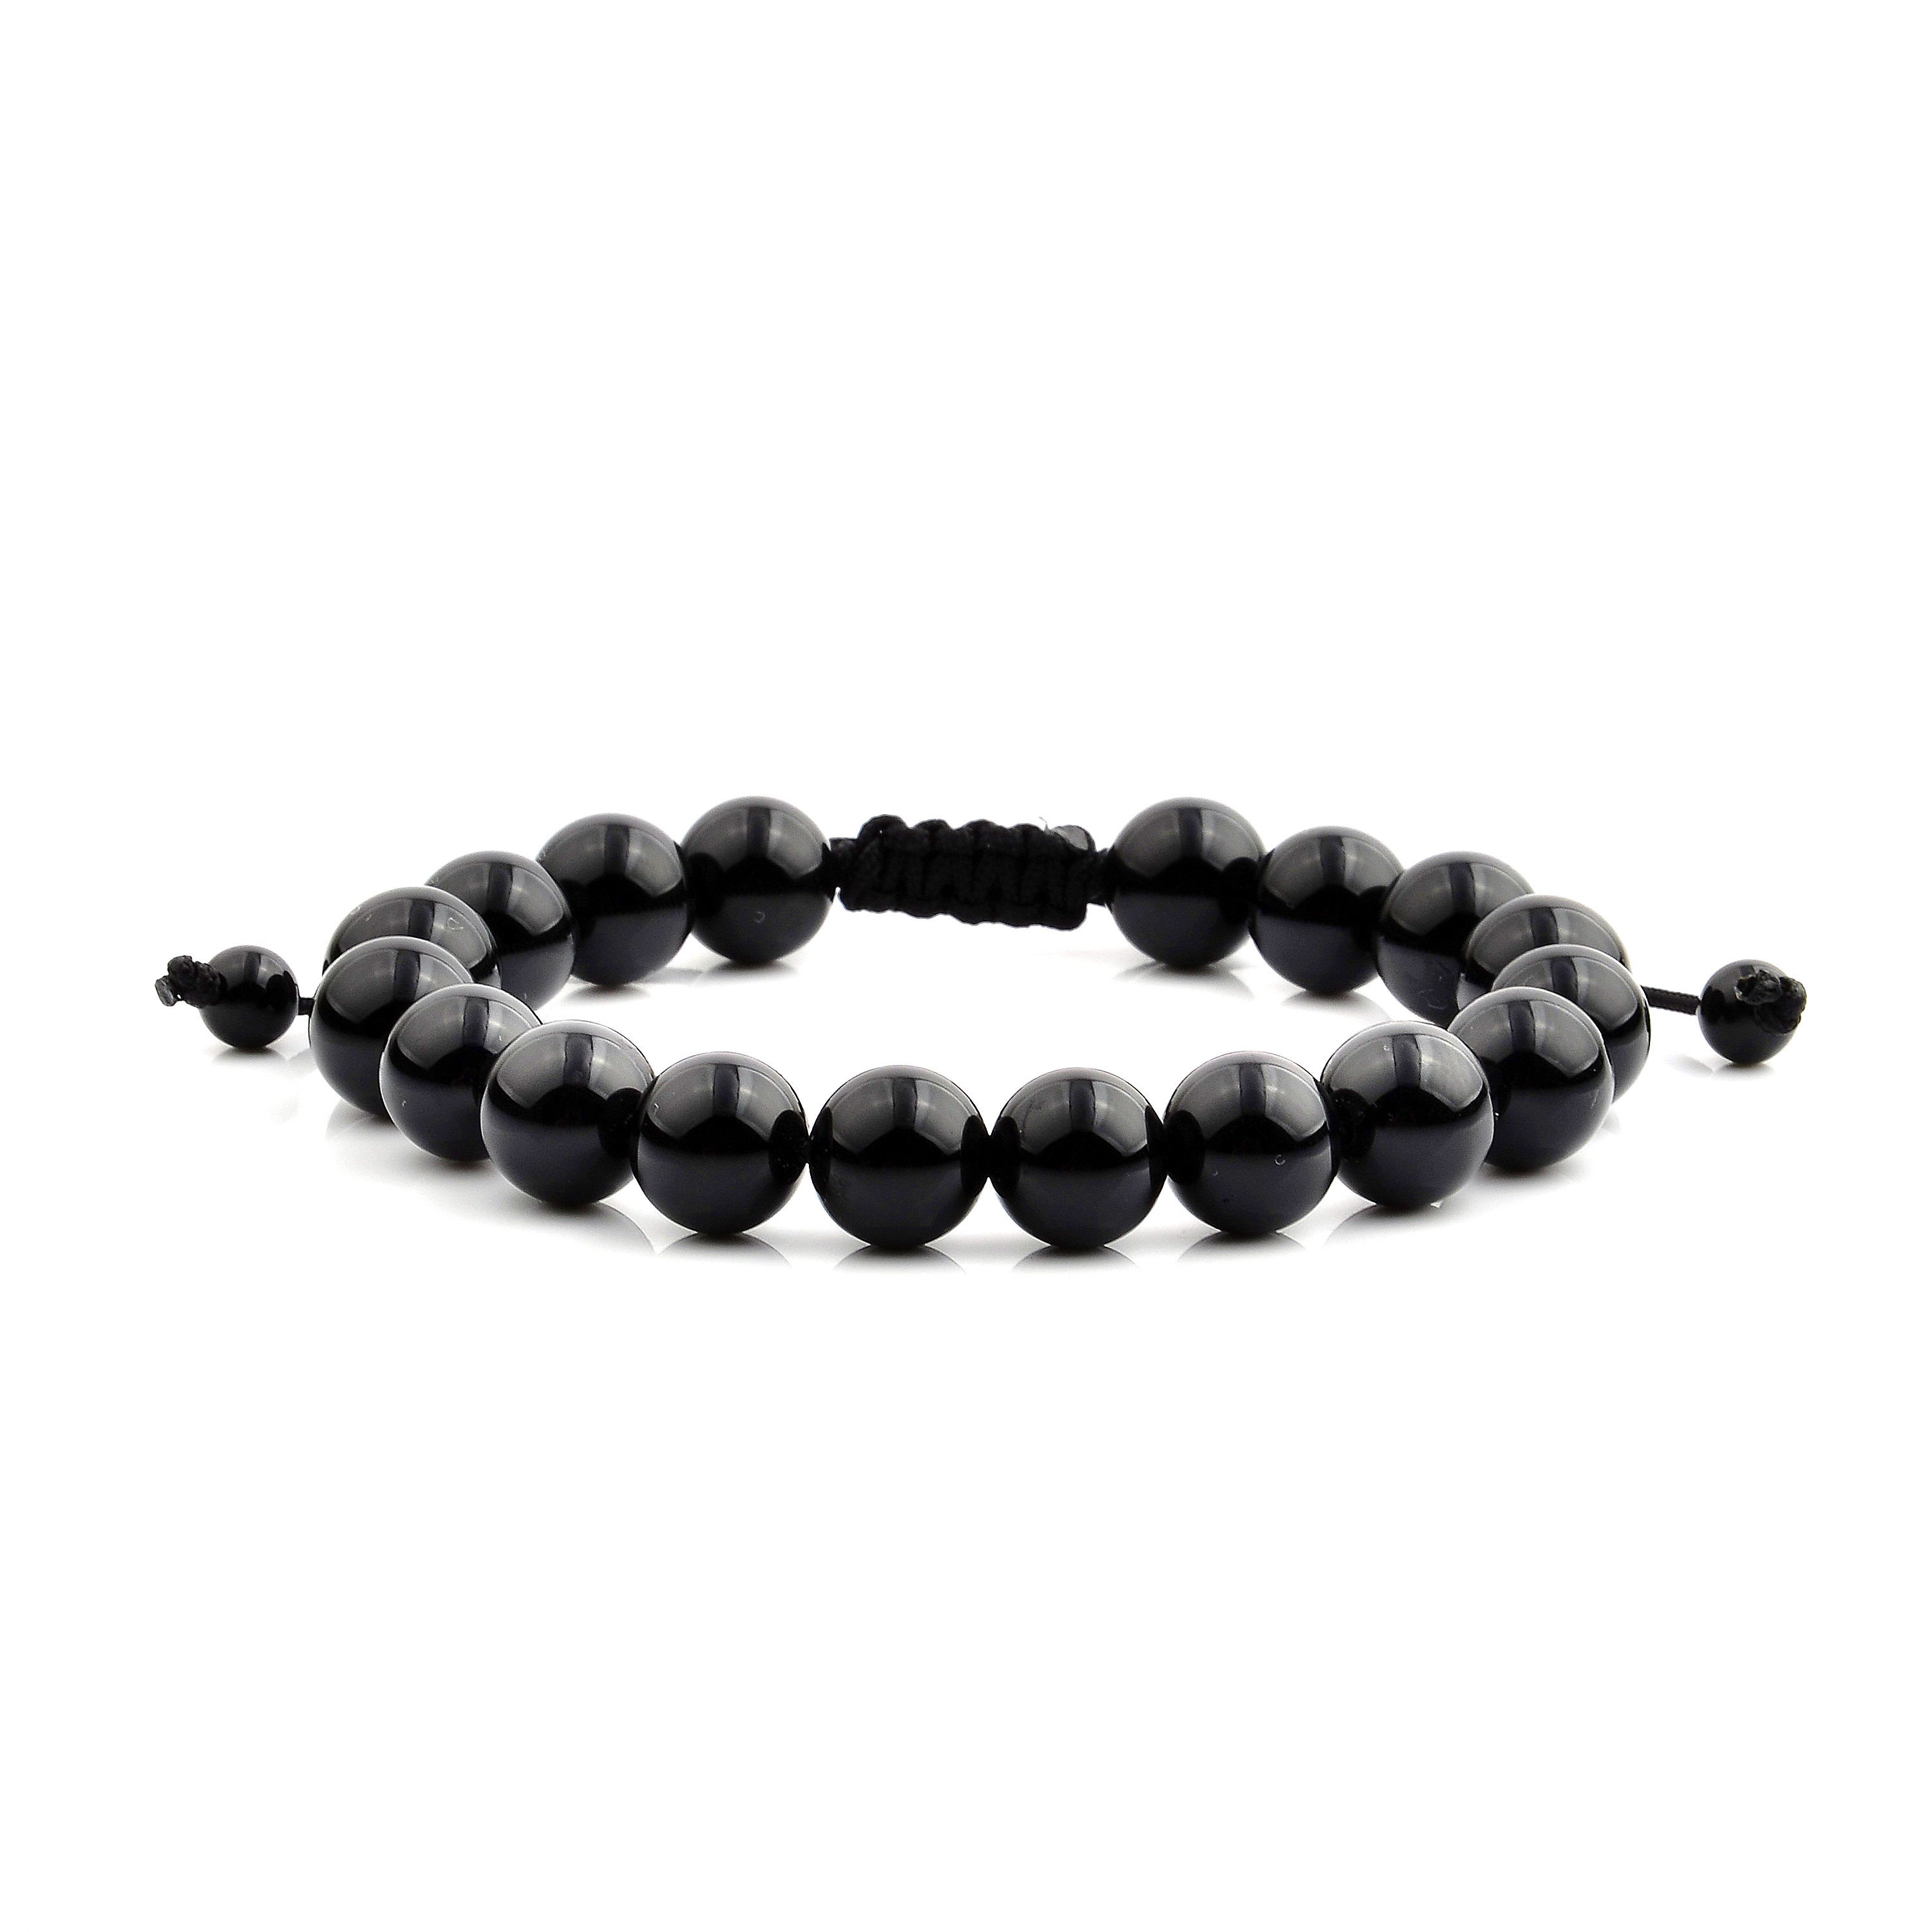 Men S Onyx Natural Healing Stone Bead Adjule Bracelet 10mm Wide Black On Free Shipping Orders Over 45 13537297